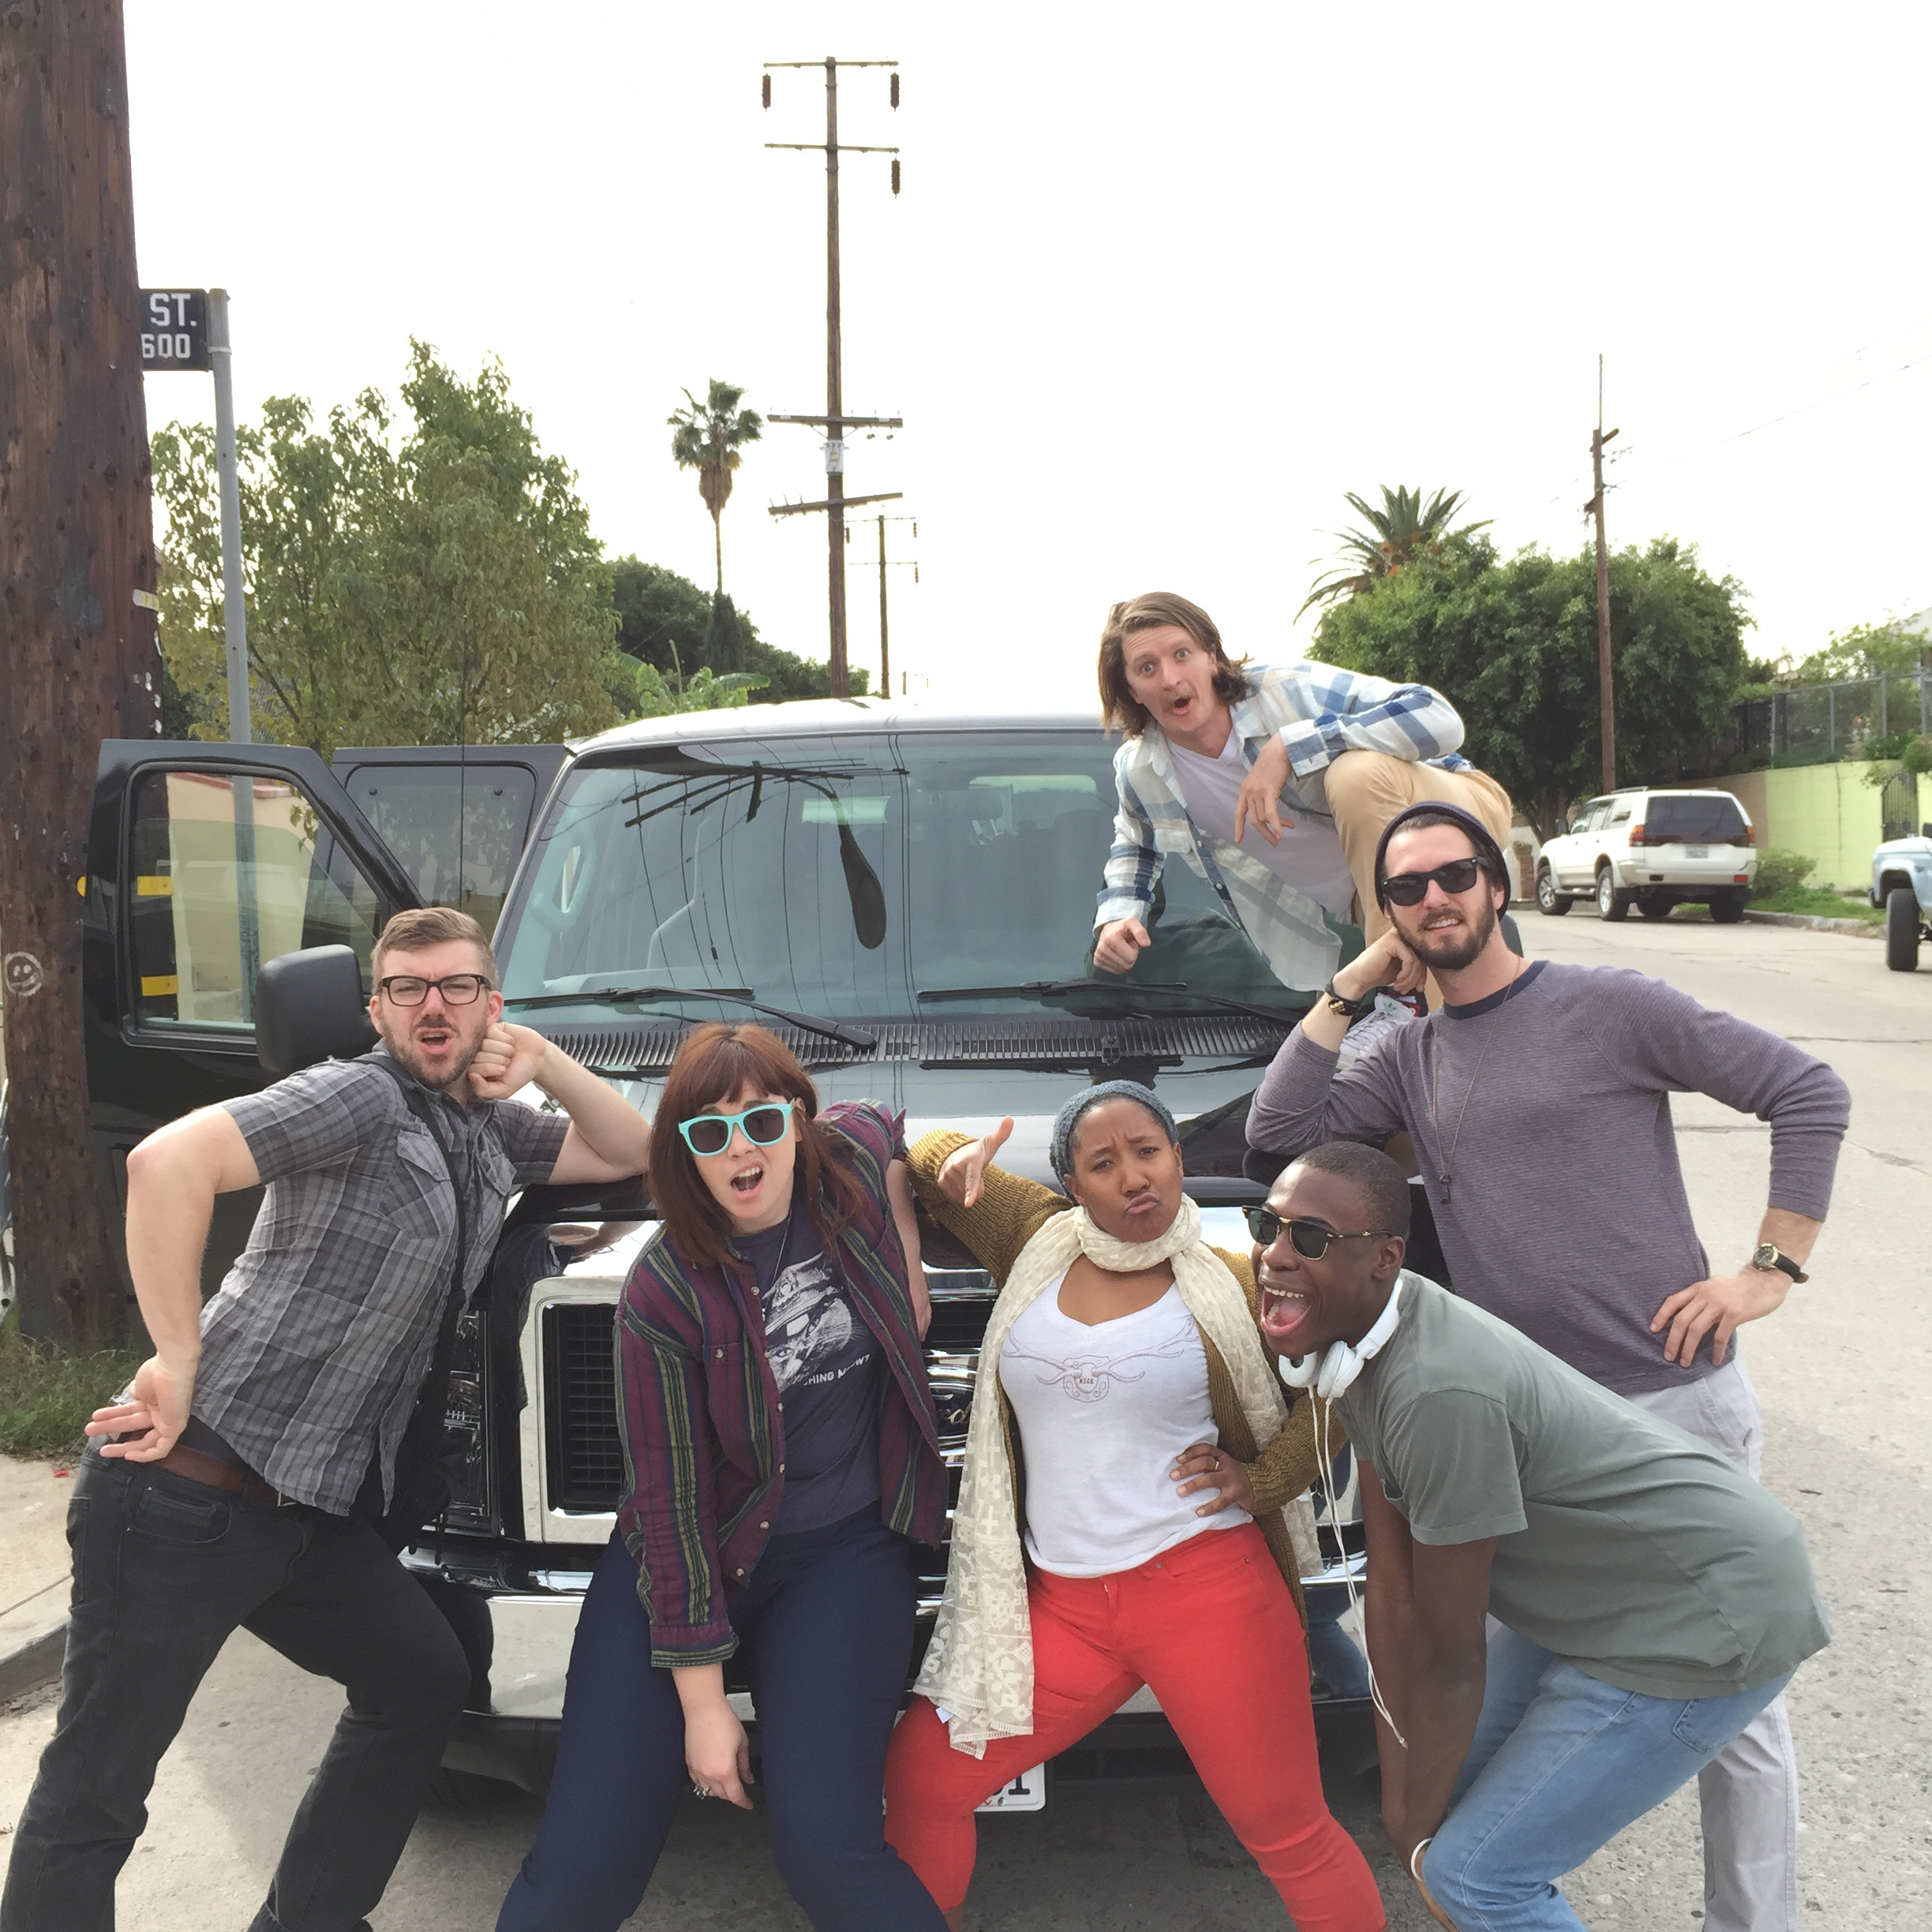 Las Vegas Tour Crew hitting the road!